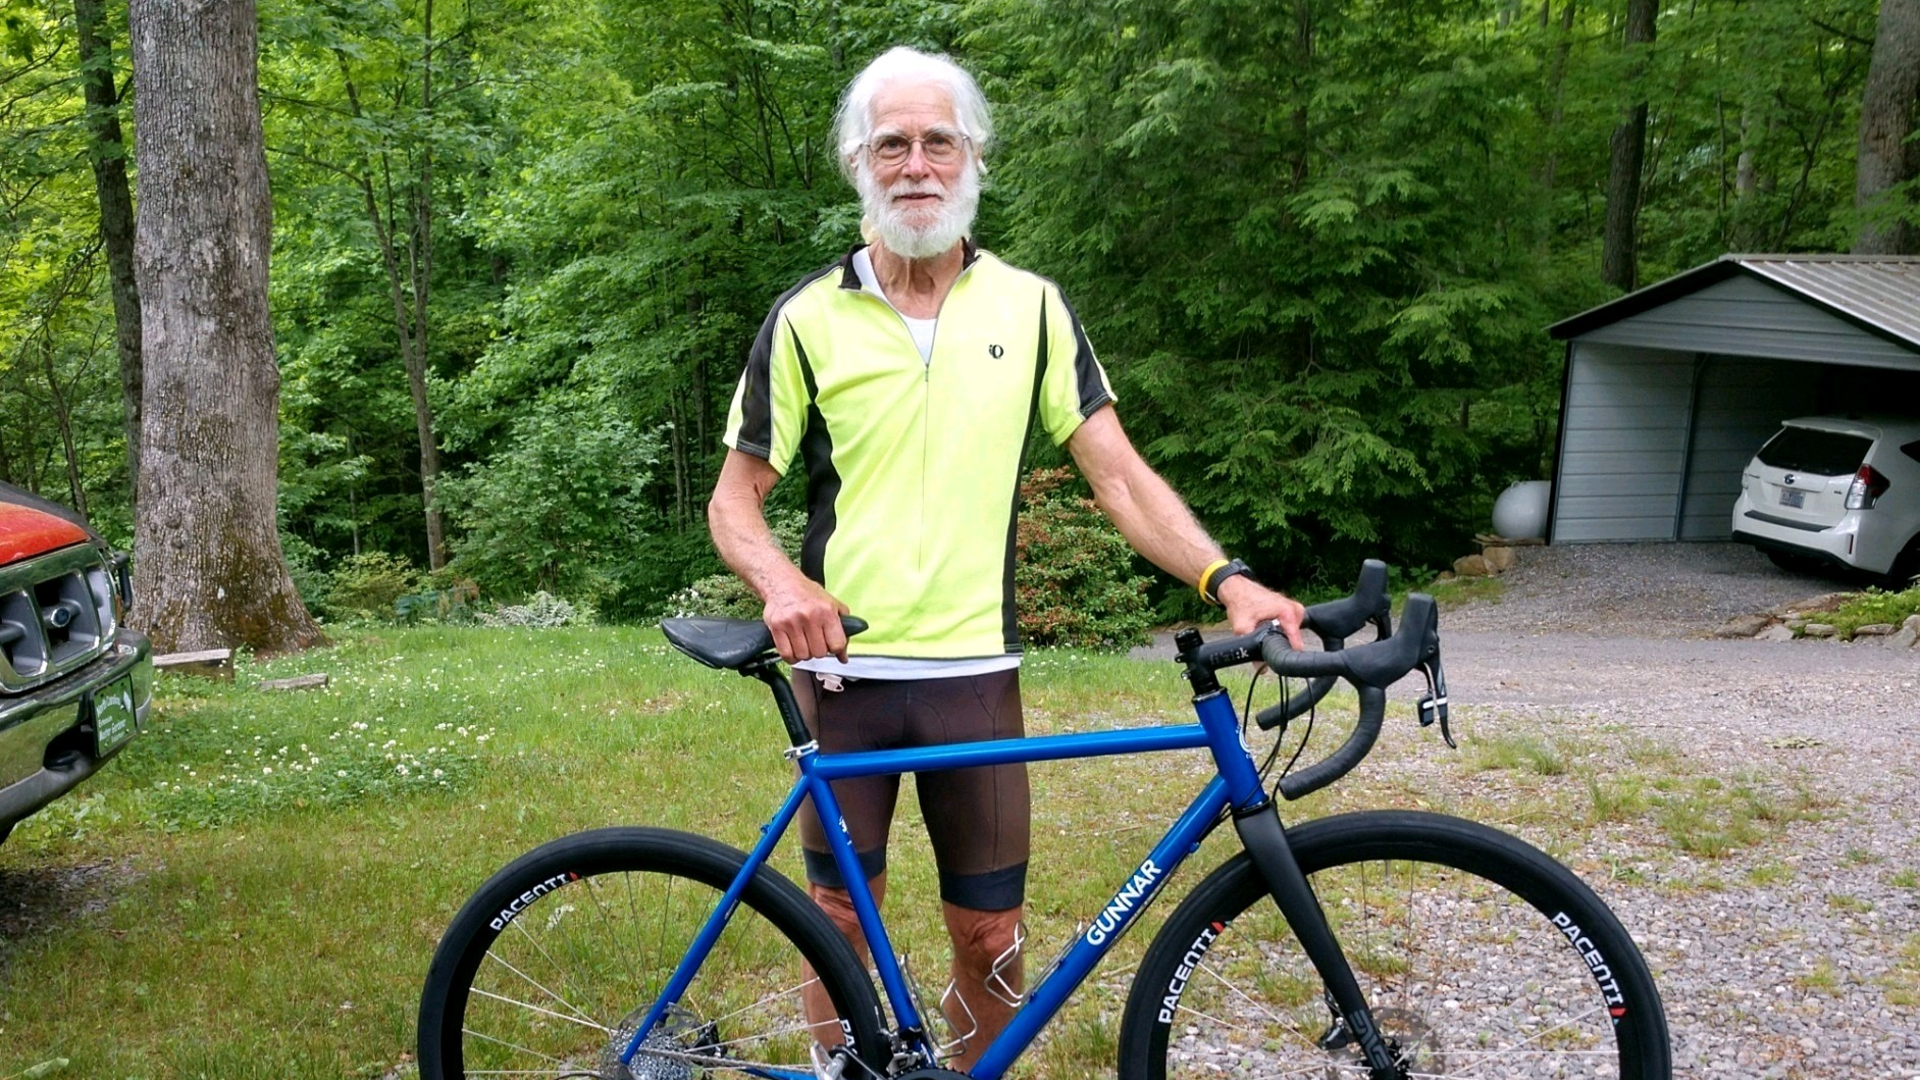 Joel Fine, a patient at Levine Cancer Institute, recently had his bladder removed as part of cancer treatment. But despite a life-changing surgery, he hasn't lost his positive attitude or passion for endurance sports.